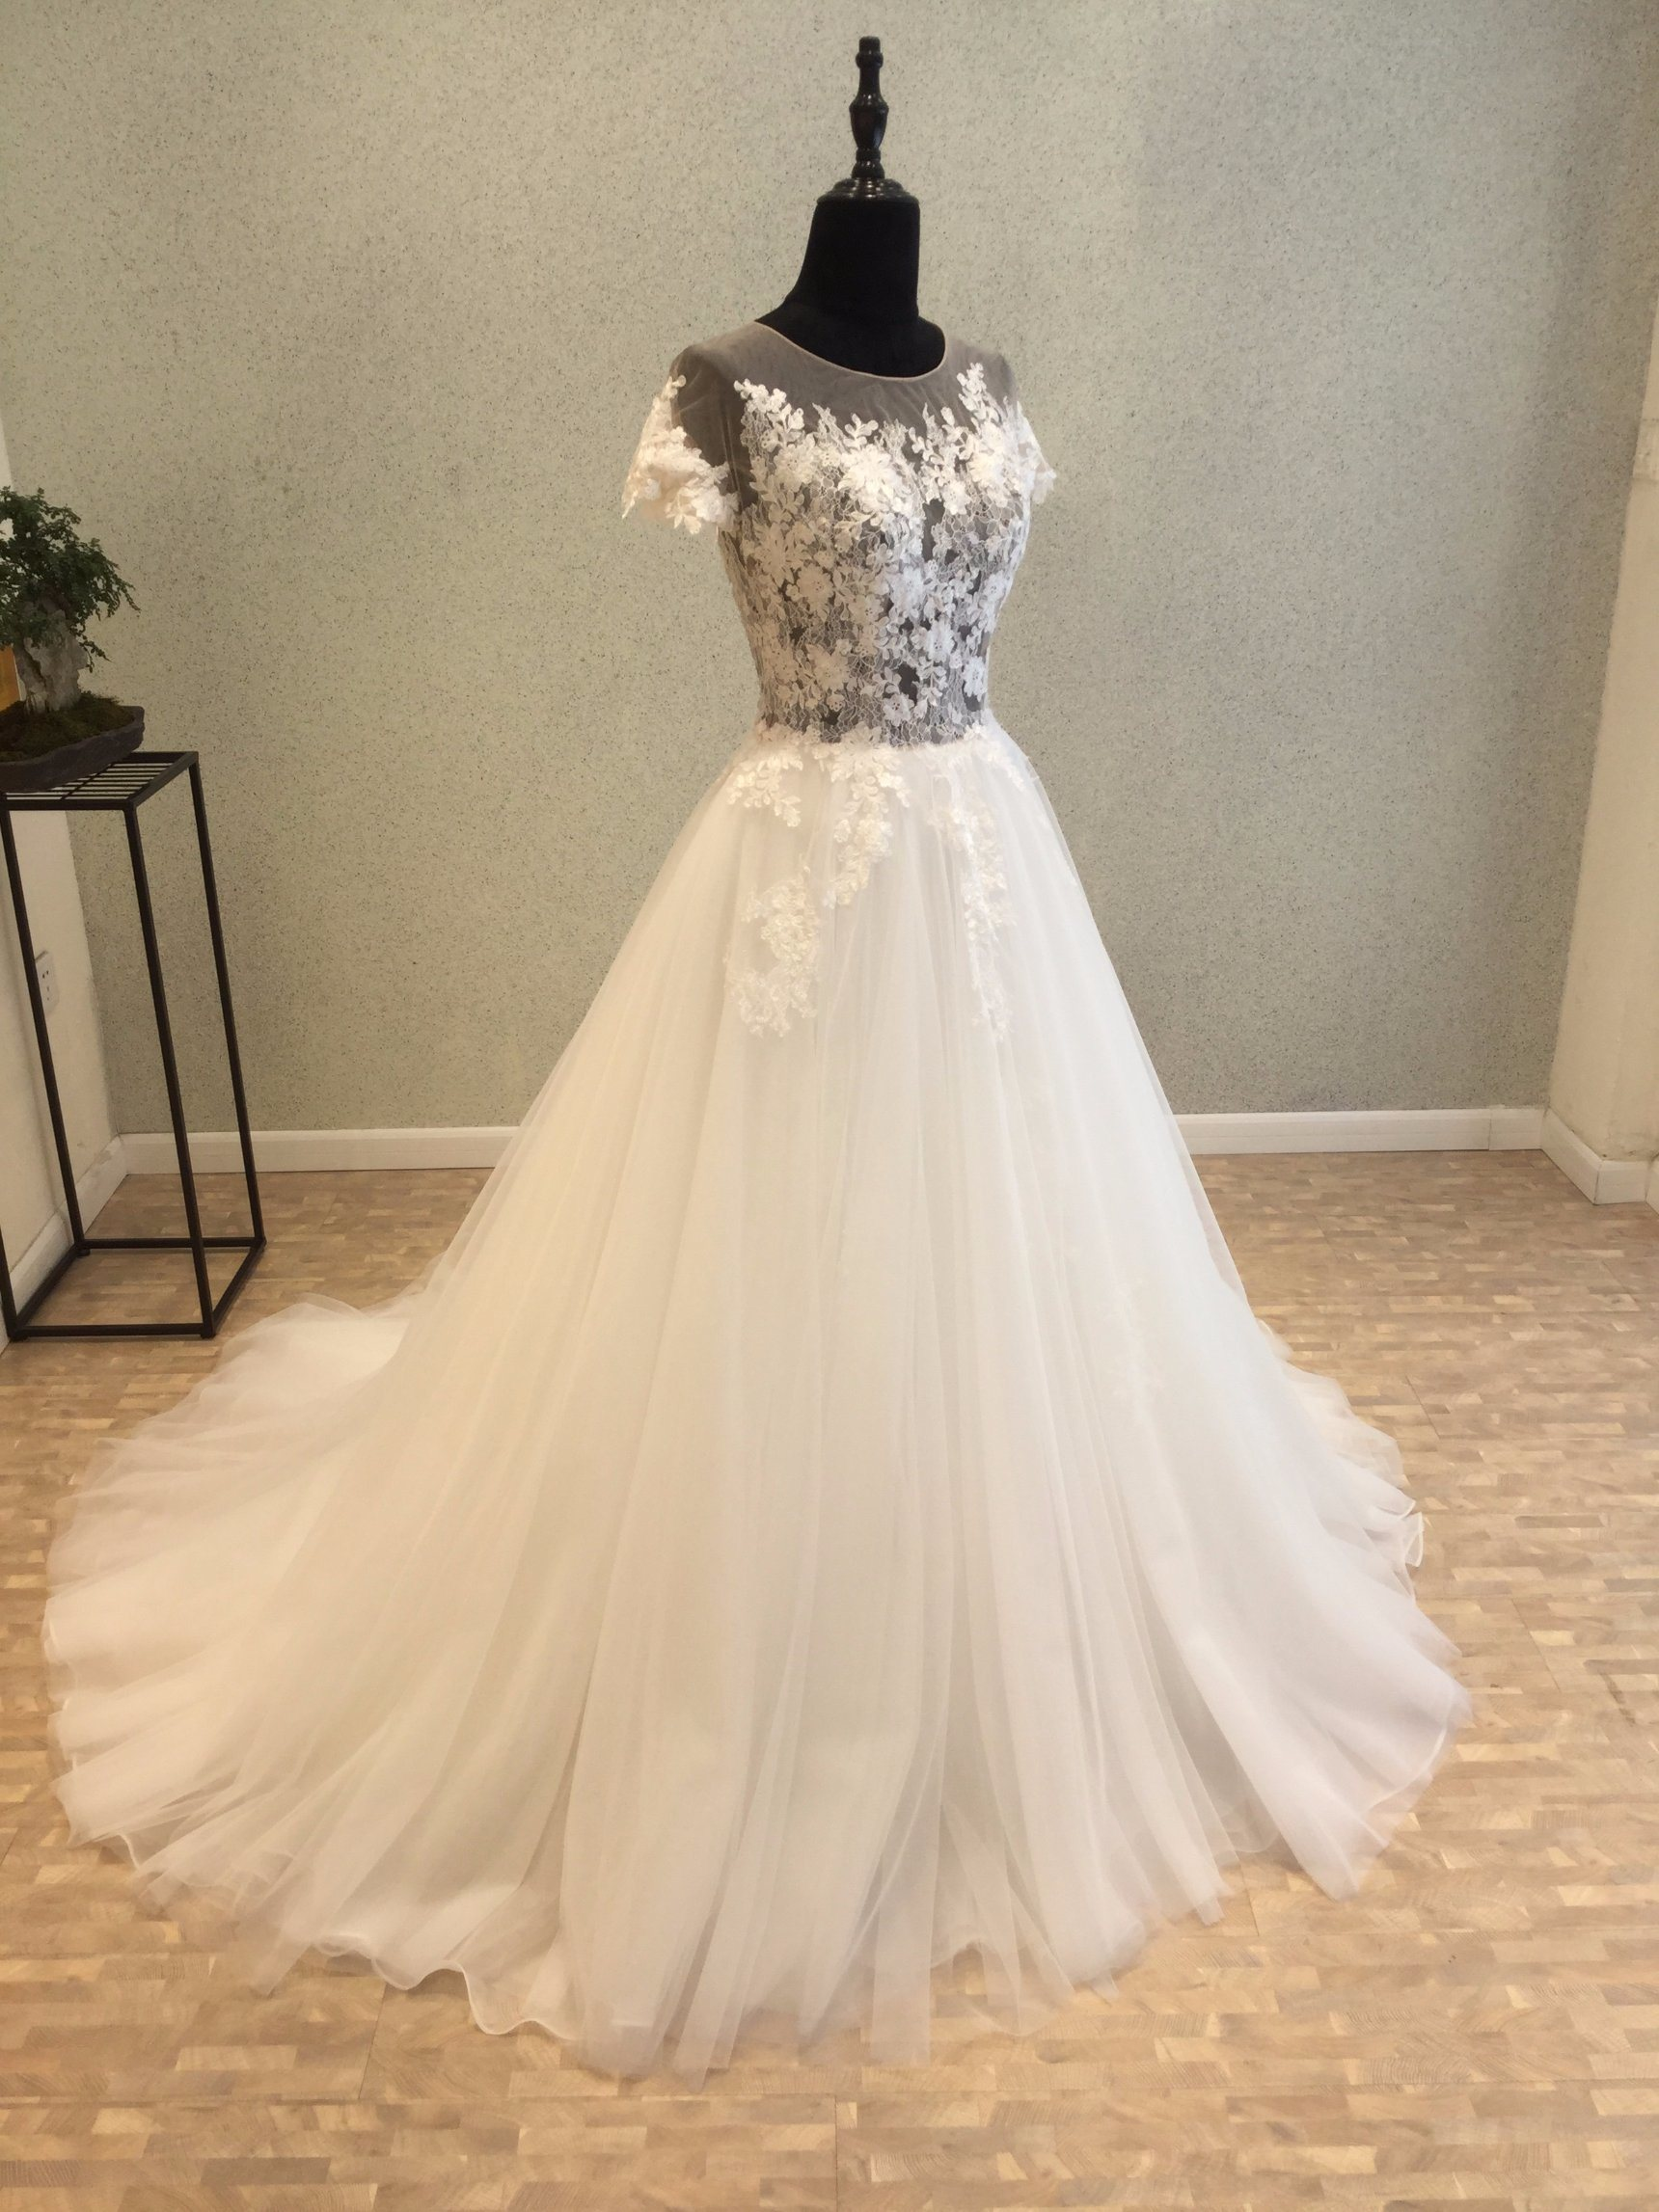 Short Sleeve Lace Evening Prom Bridal Gown Wedding Dress